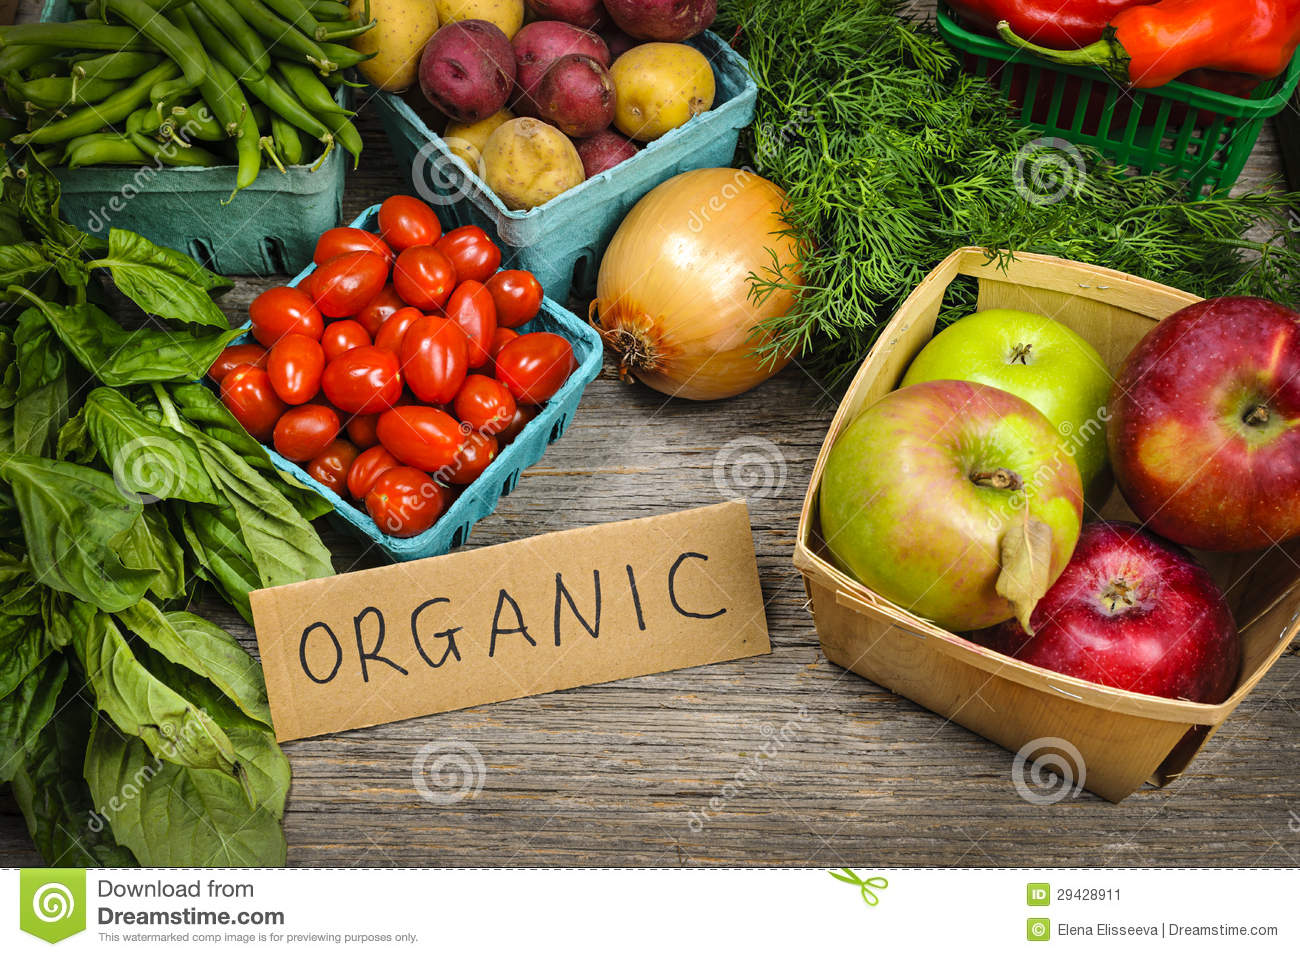 Organic fruits and vegetables market in india